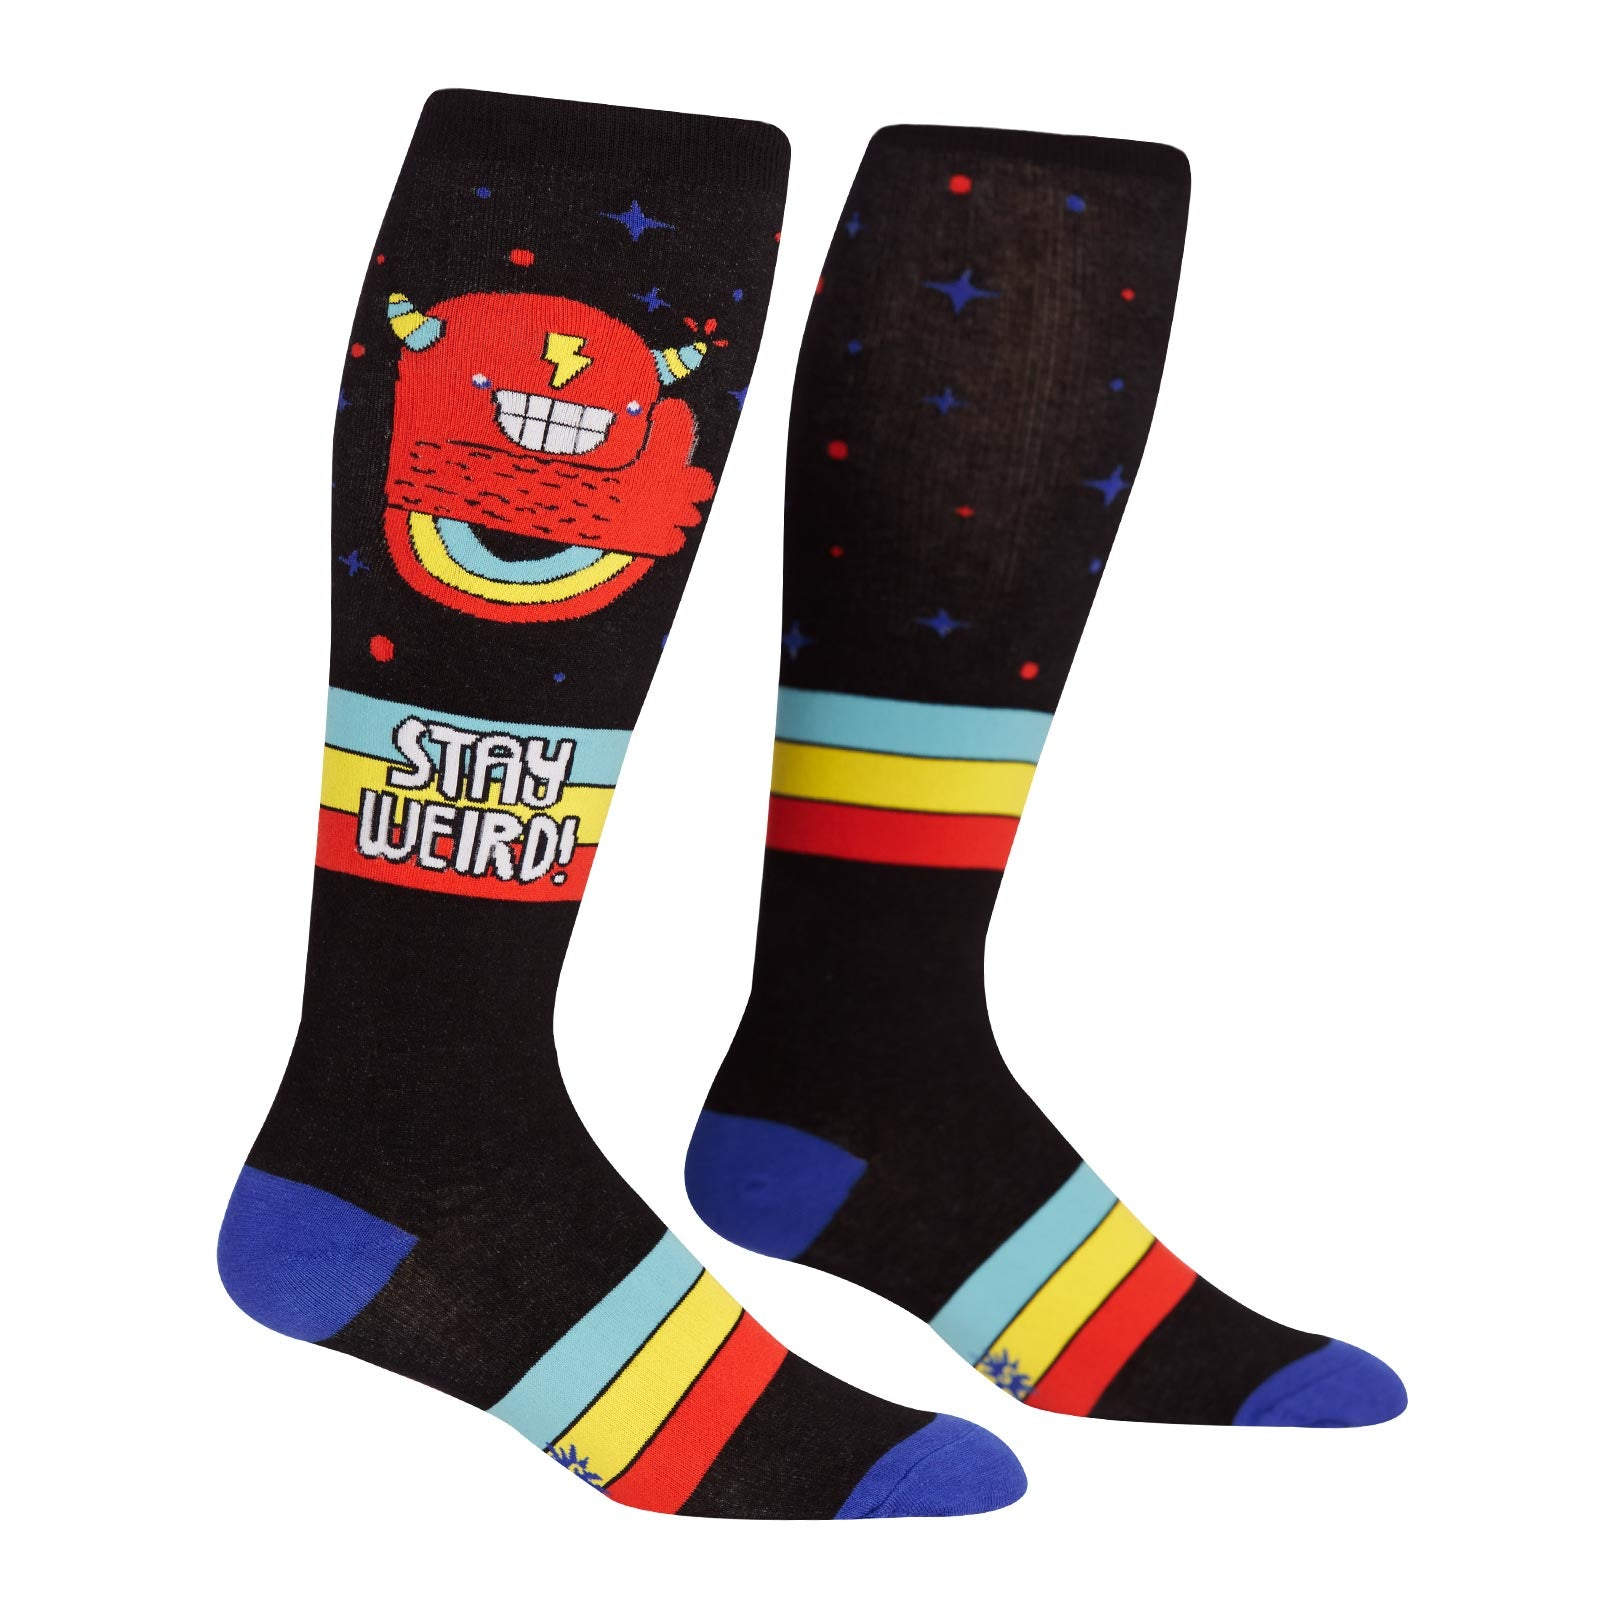 Extra-stretchy STAY WEIRD knee-high socks with monsters for wide calves